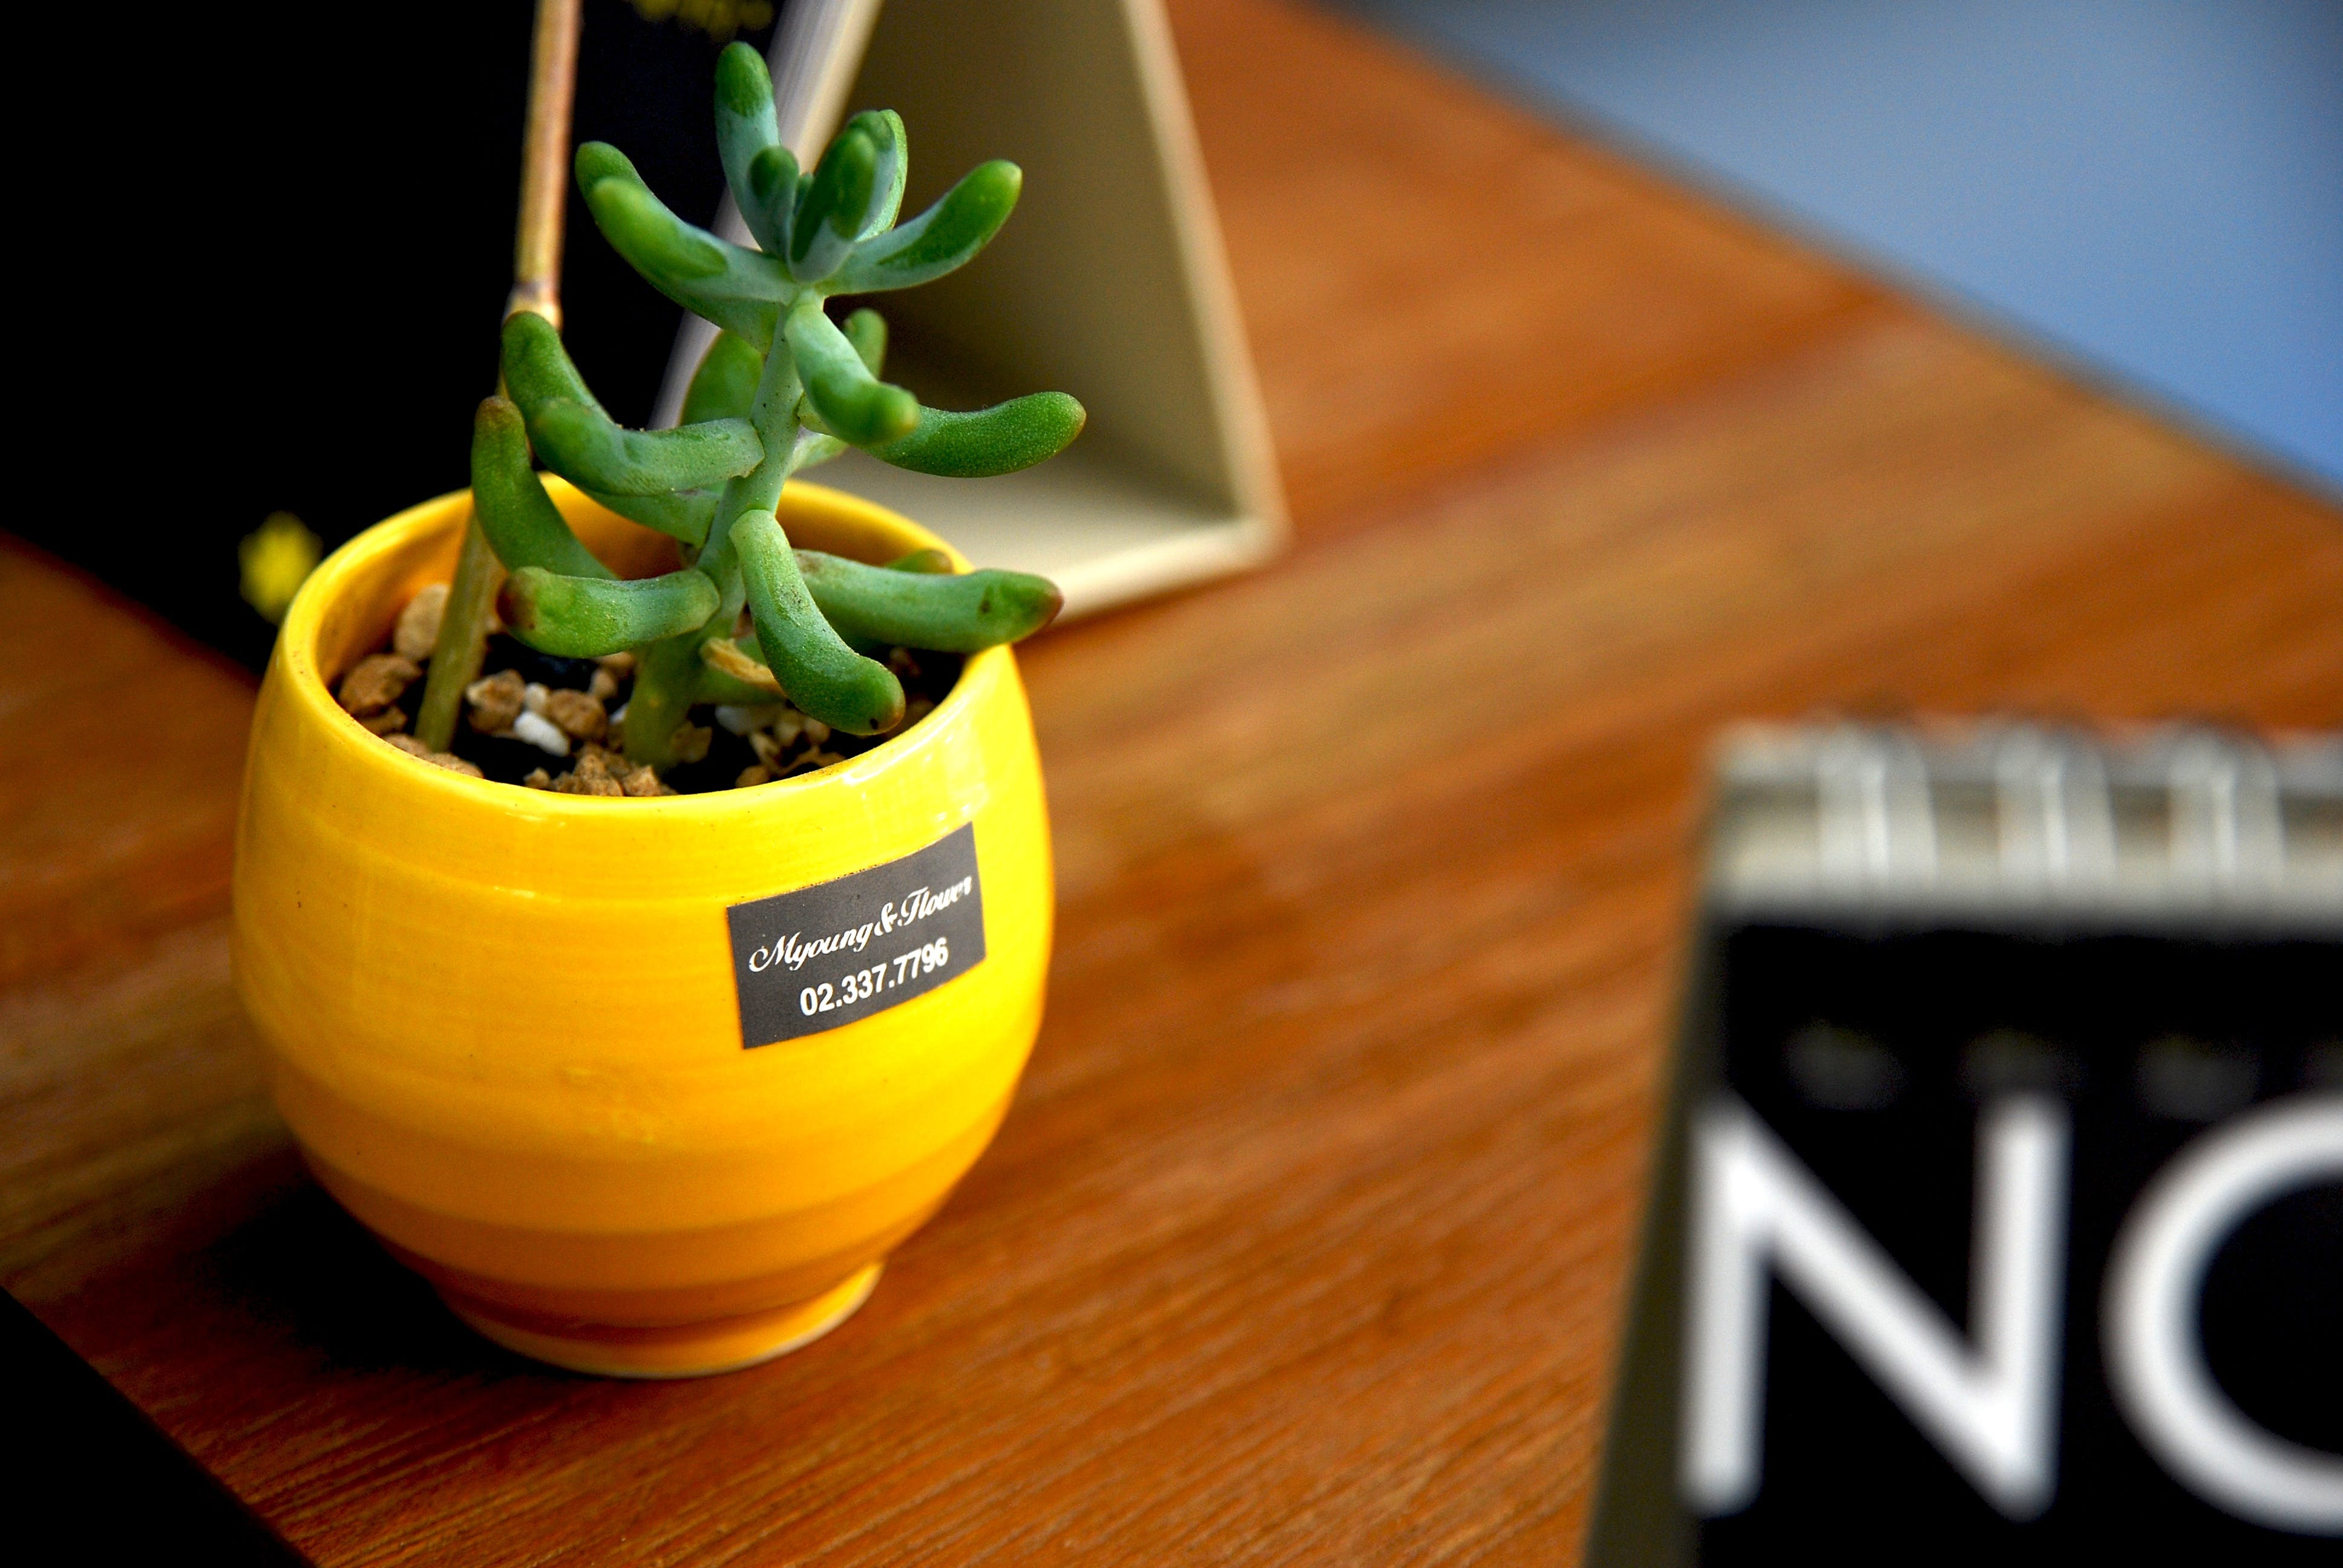 Green Succulent on Brown Wooden Surface